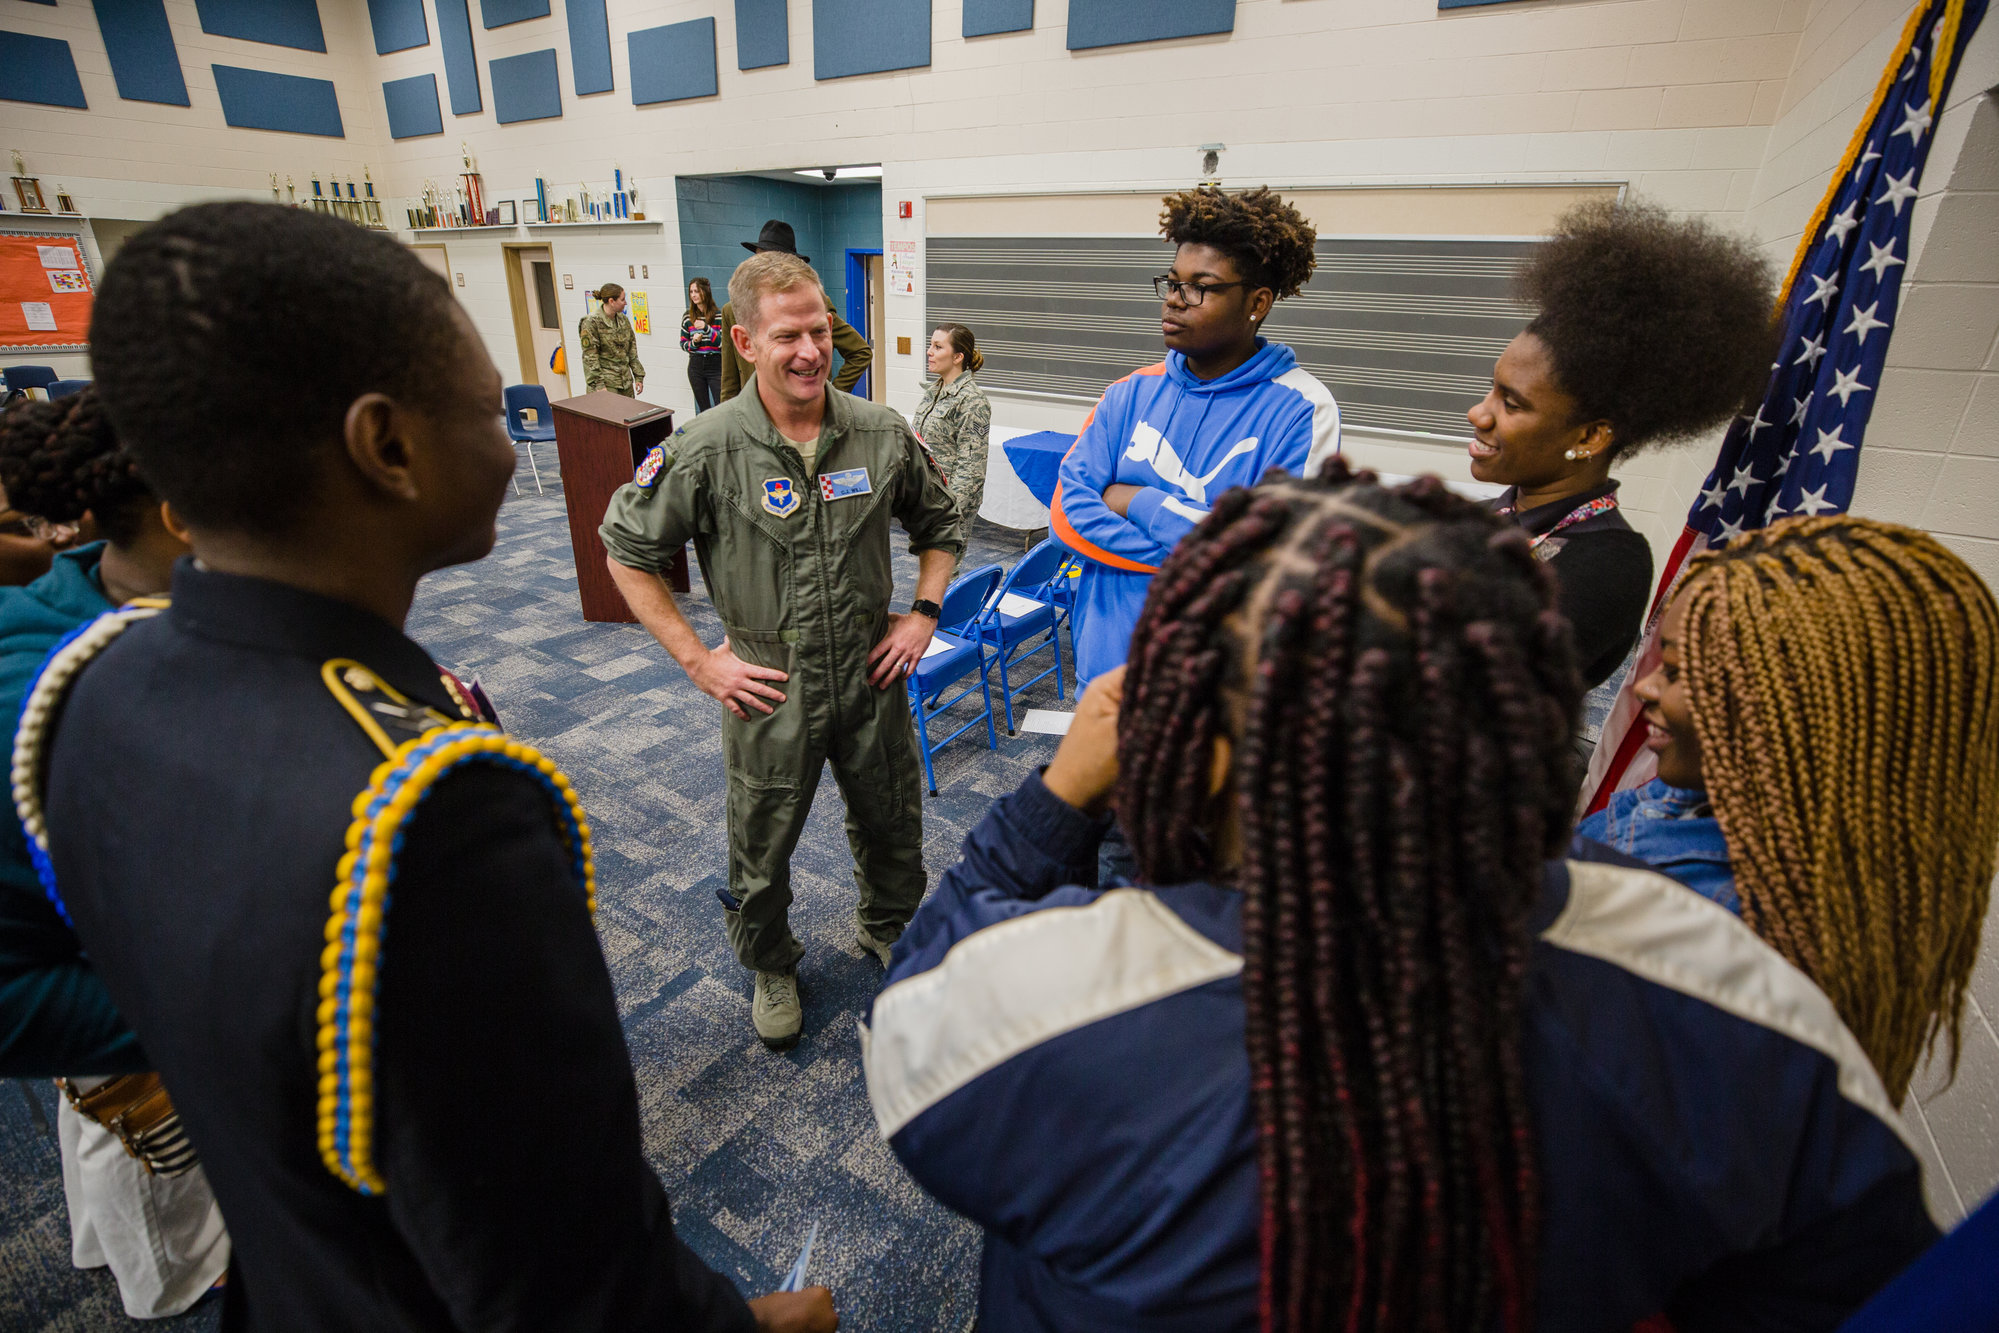 Col. Christopher J. Will, commander, 765th Detachment, Air Force Reserve Officer Training Corps, speaks with students at Scott's Branch High School on Wednesday.